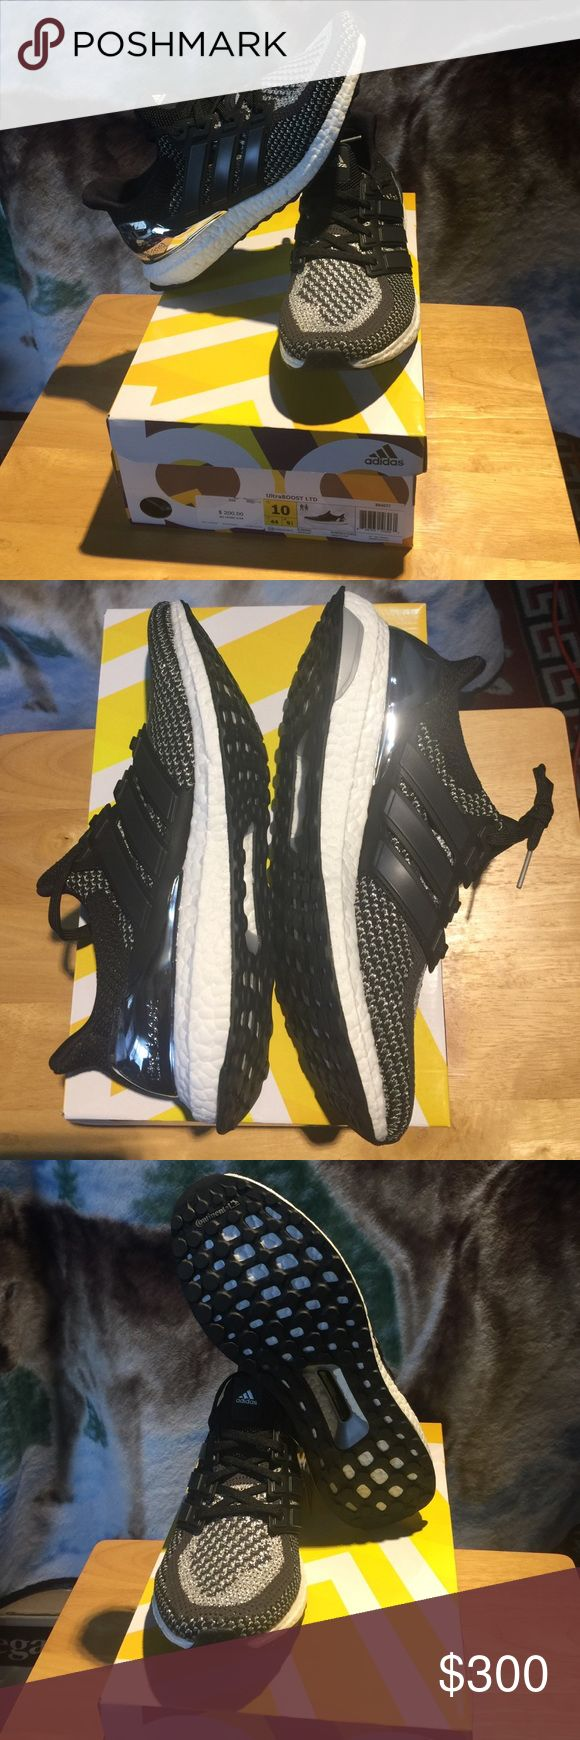 Adidas Ultra Boost Silver Medal Limited Edition Brand new Adidas Ultra Boost Silver Medal Limited Edition BB4077 Black Silver Size 10 Adidas Shoes Sneakers